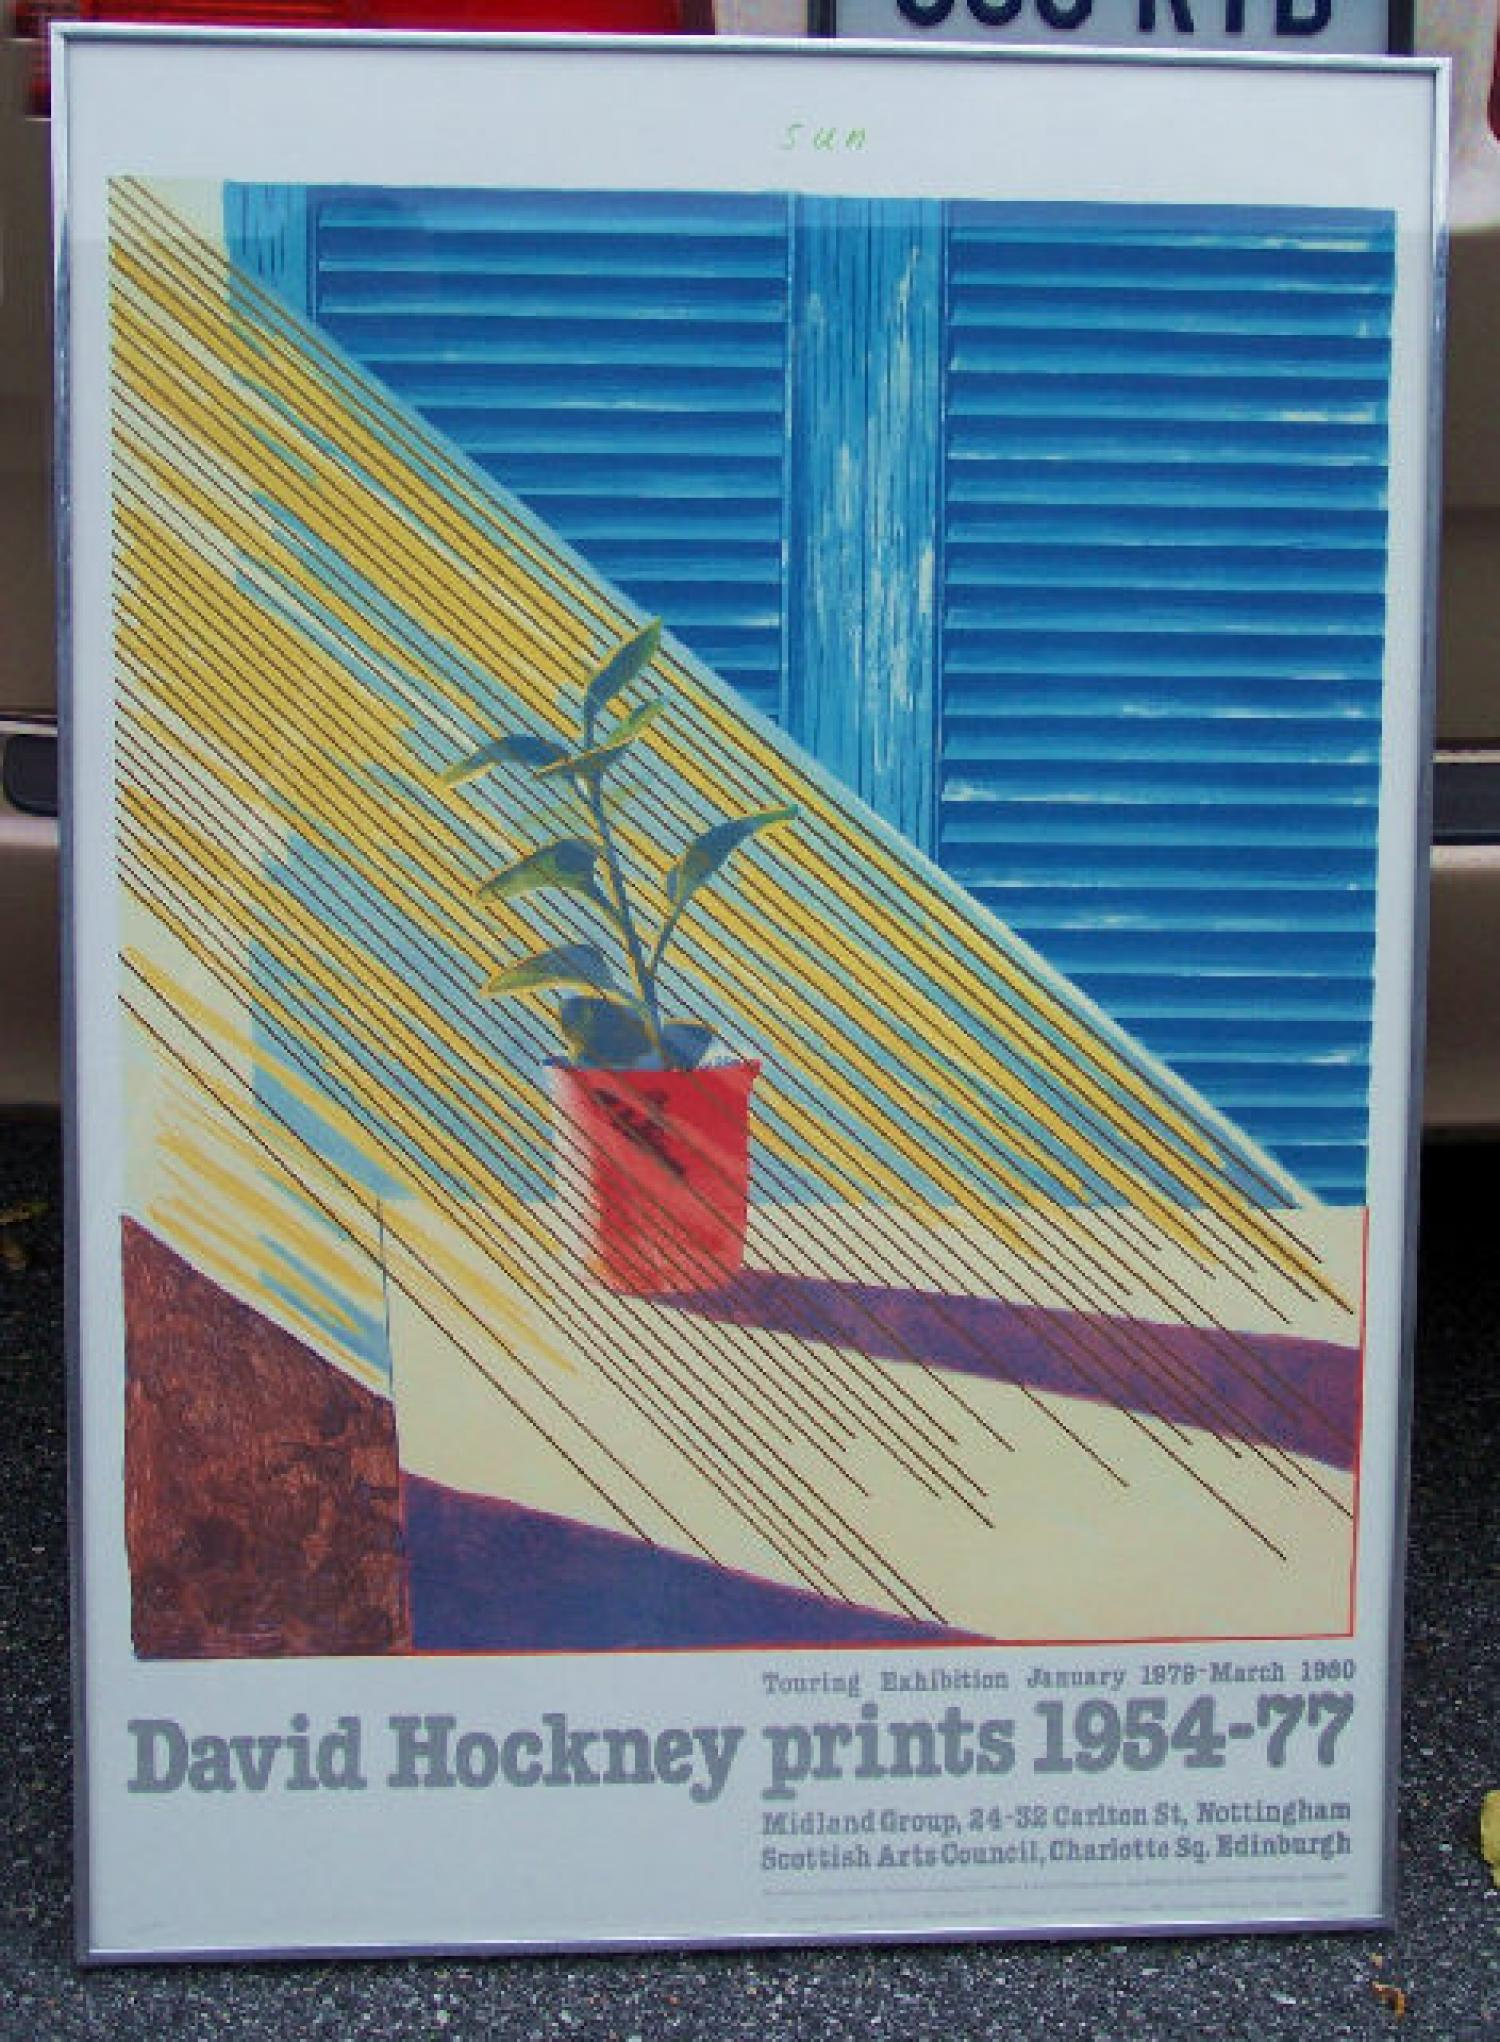 David Hockney print Sun for 1954  to 1977 exhibition poster 1979